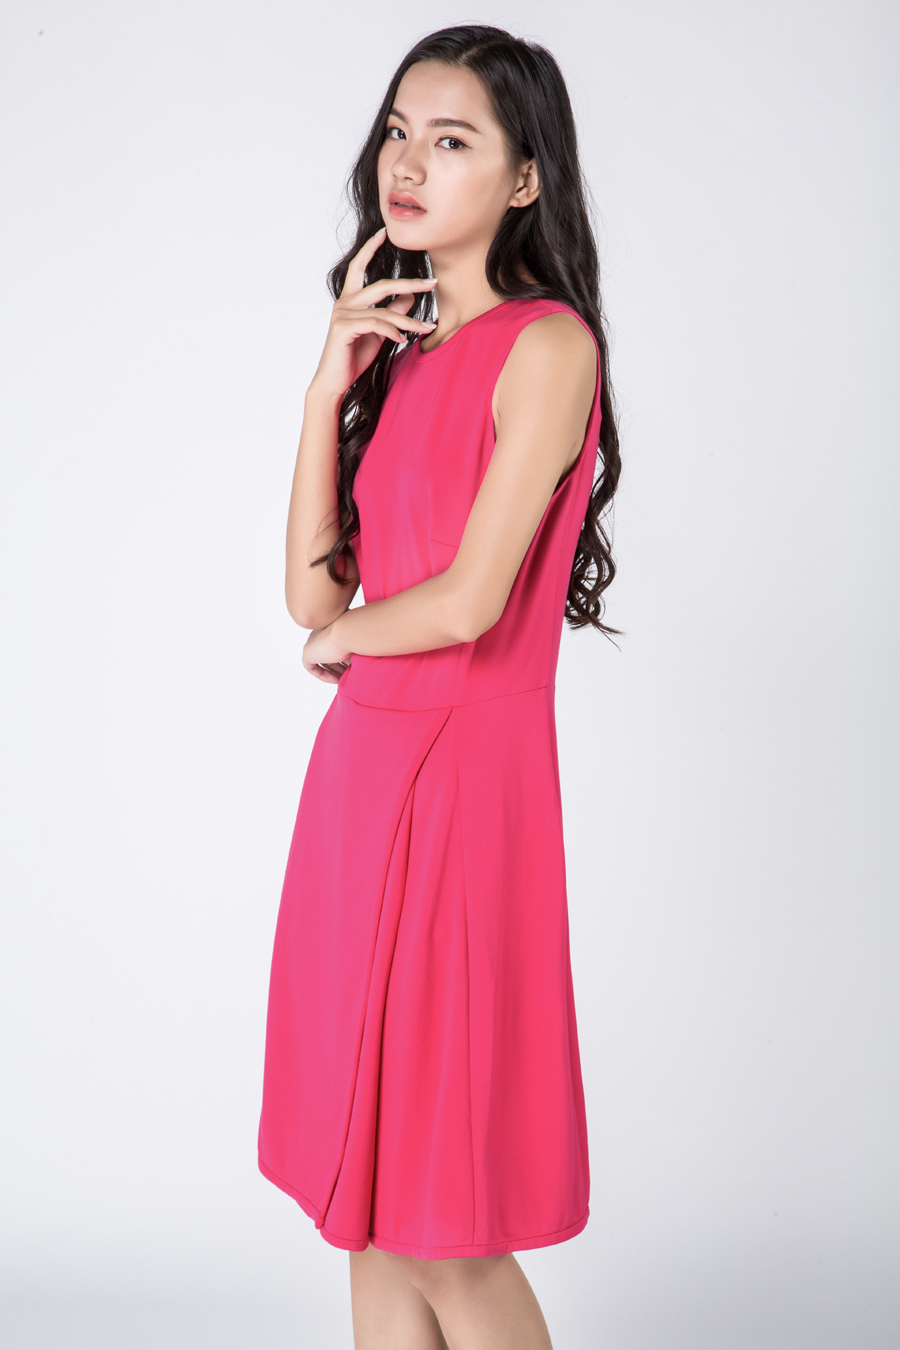 Gaoping  Wenqiong G1603/04 women cotton round neck sleeveless dress